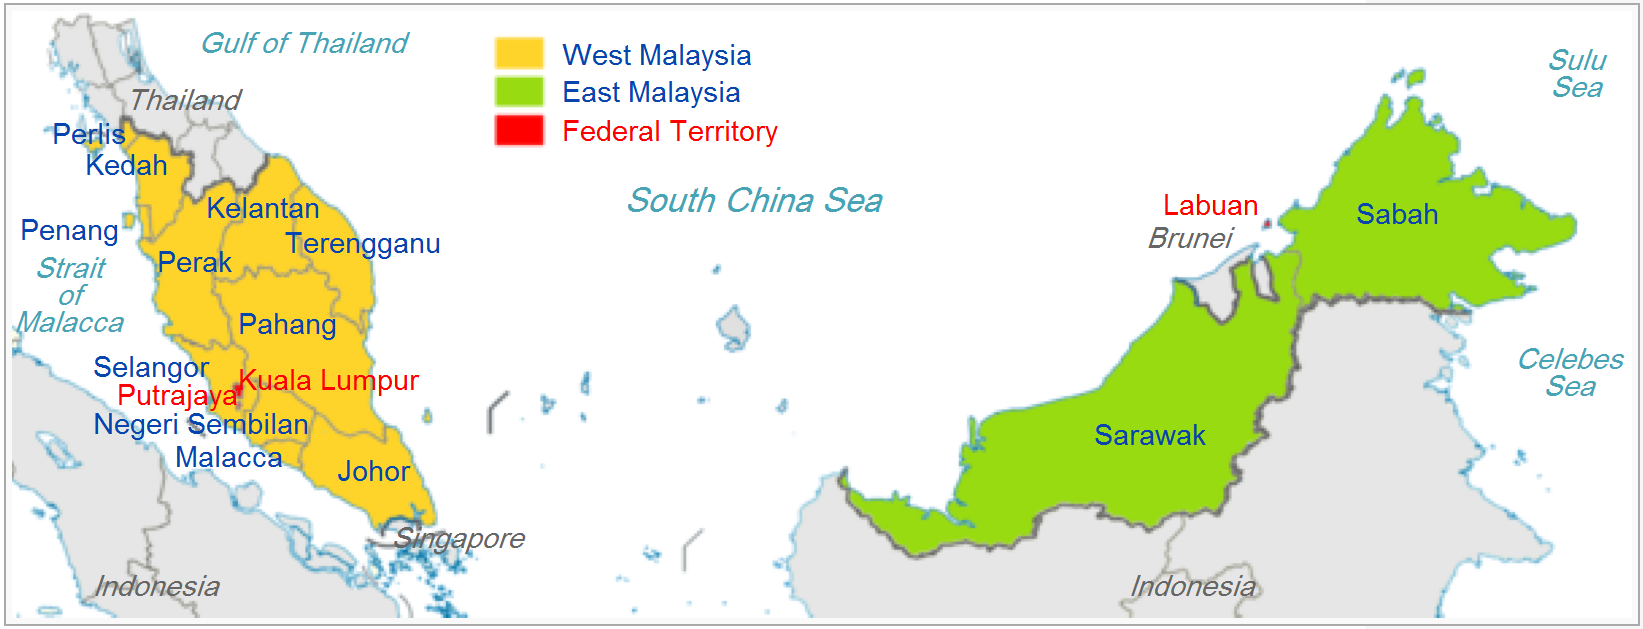 Malaysia Administrative divisions Map